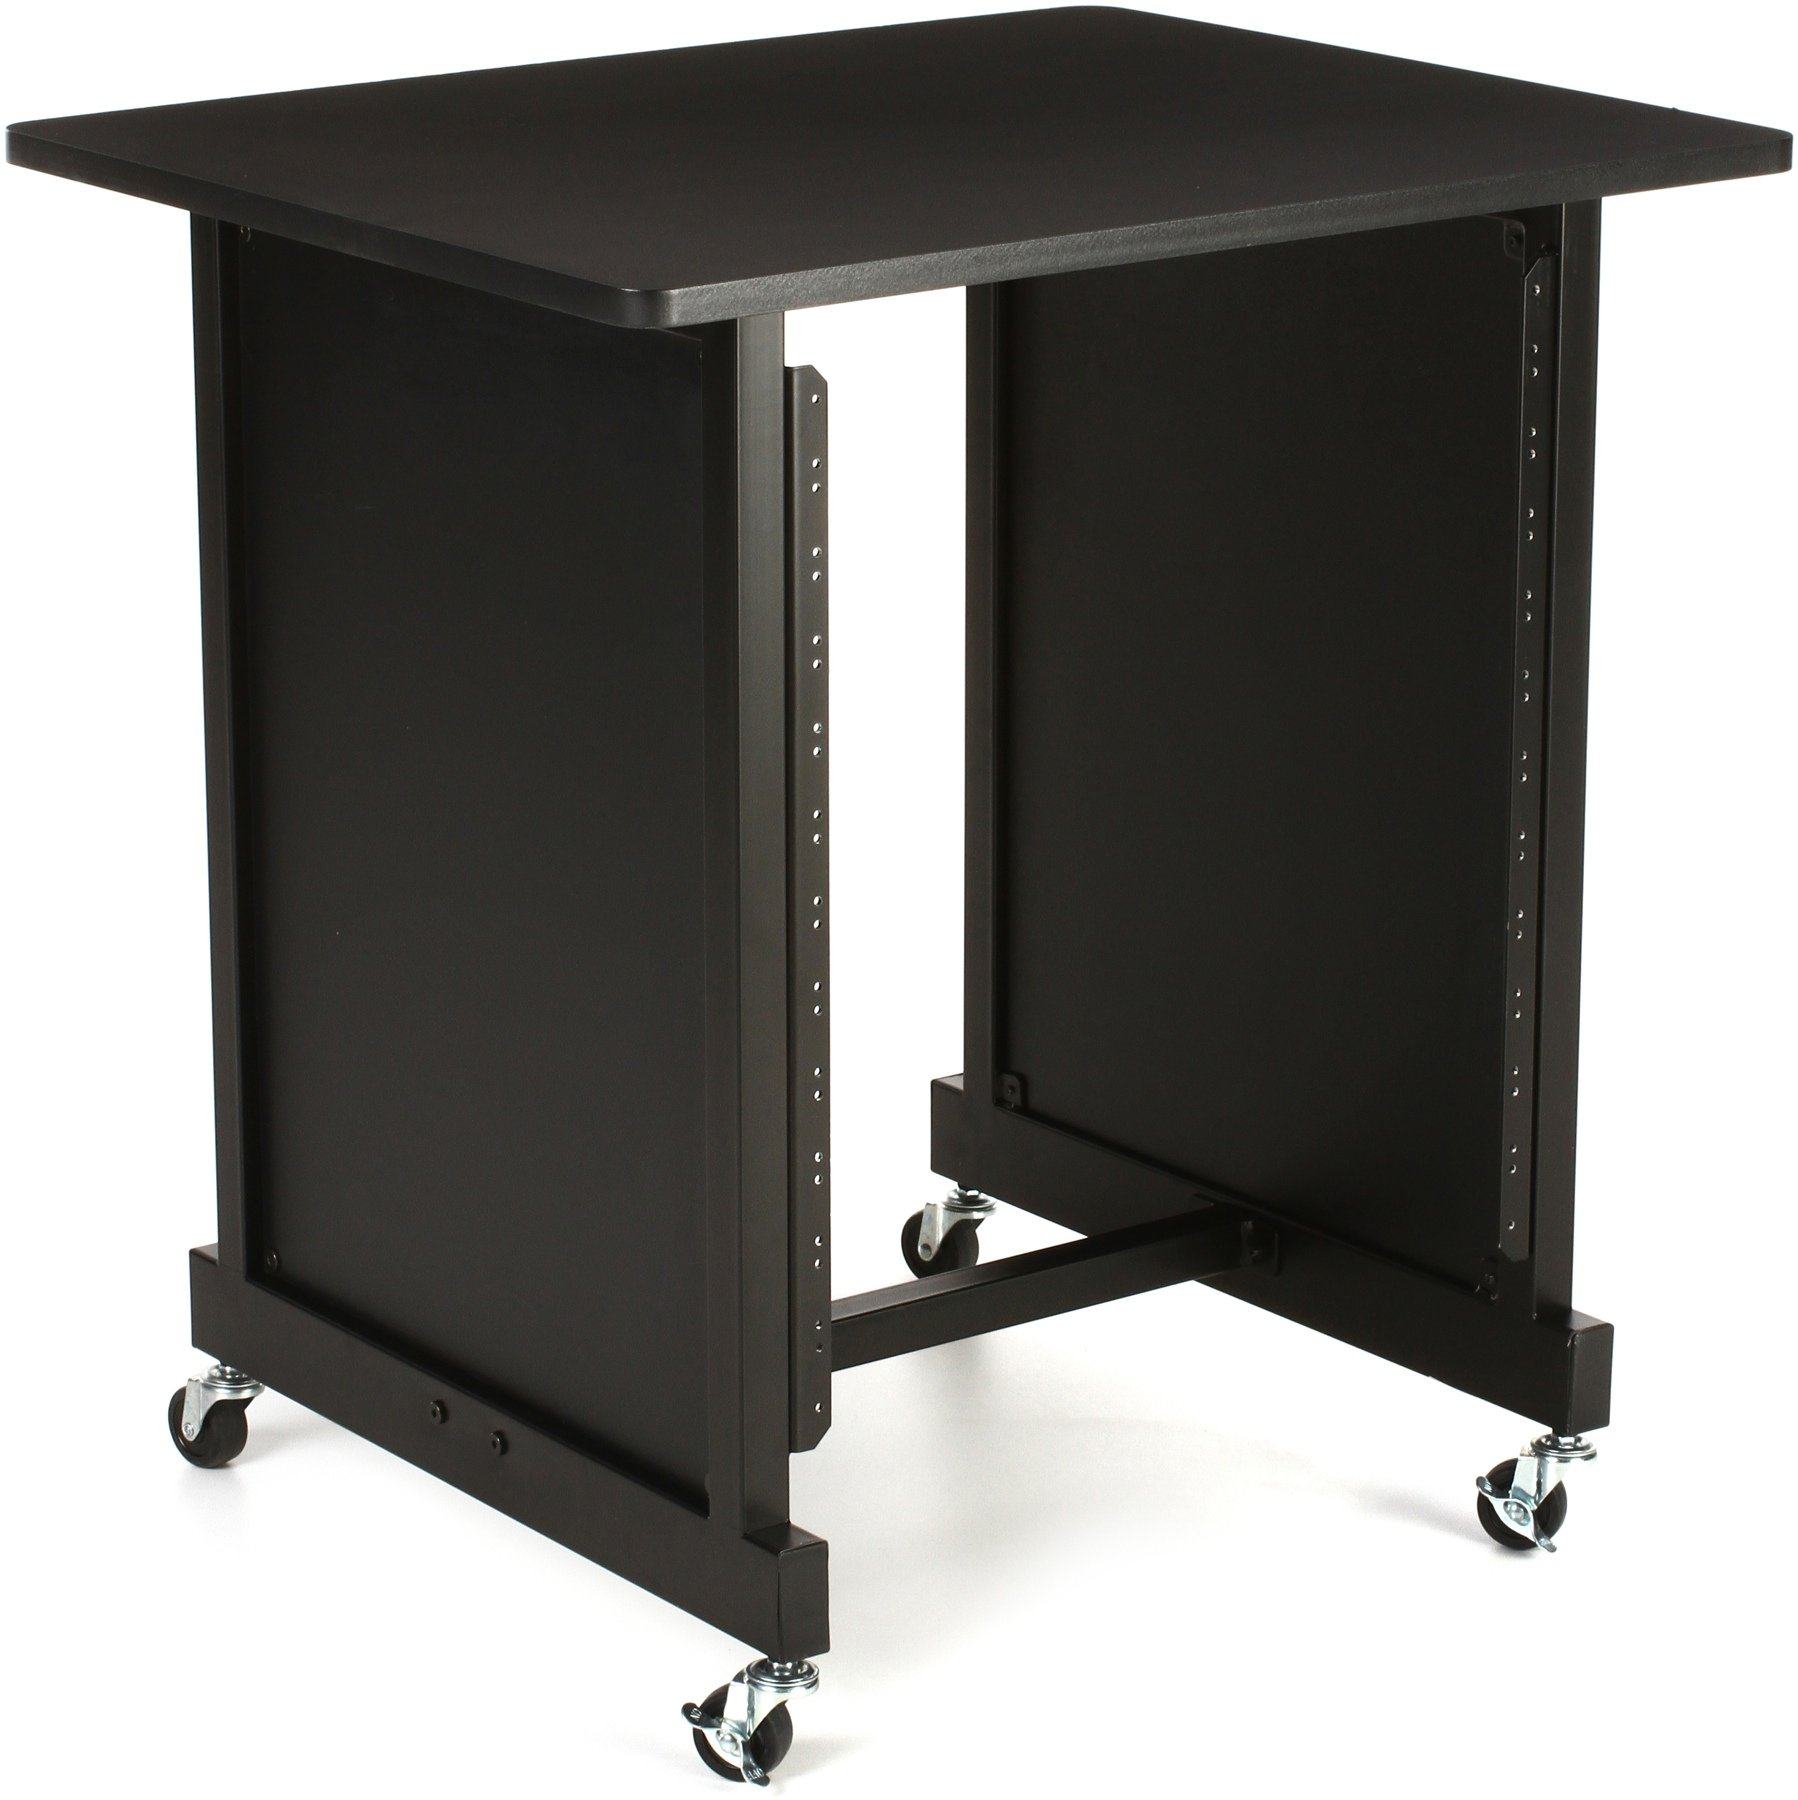 Beautiful On Stage Stands WSR7500B Rack Cabinet   Black